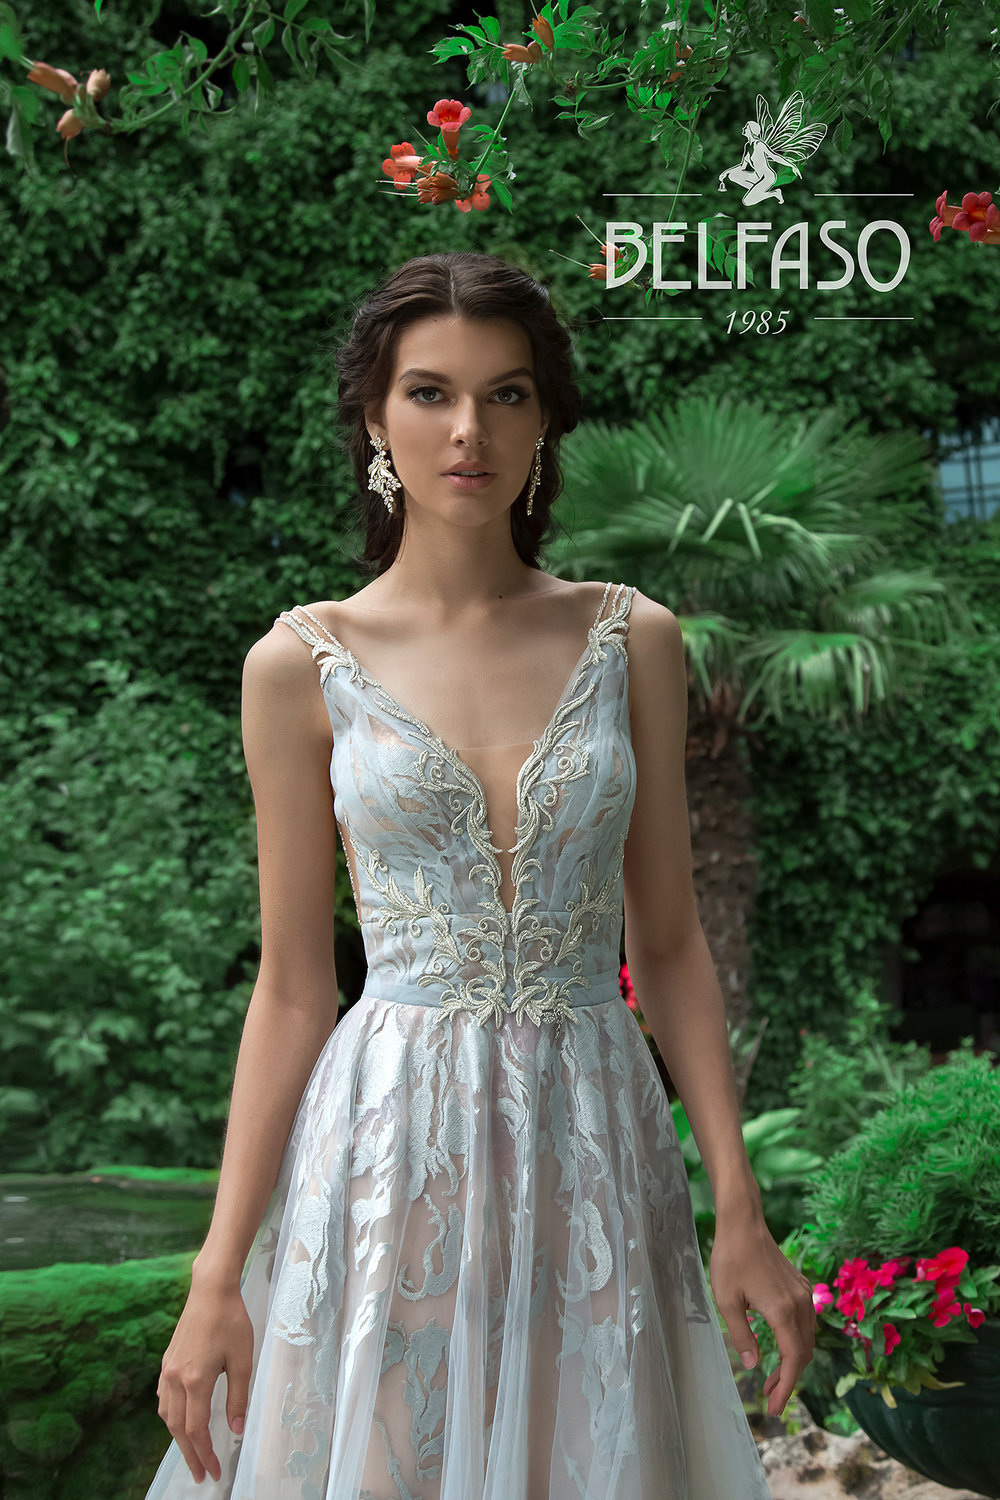 BLISS-2 dress by BELFASO